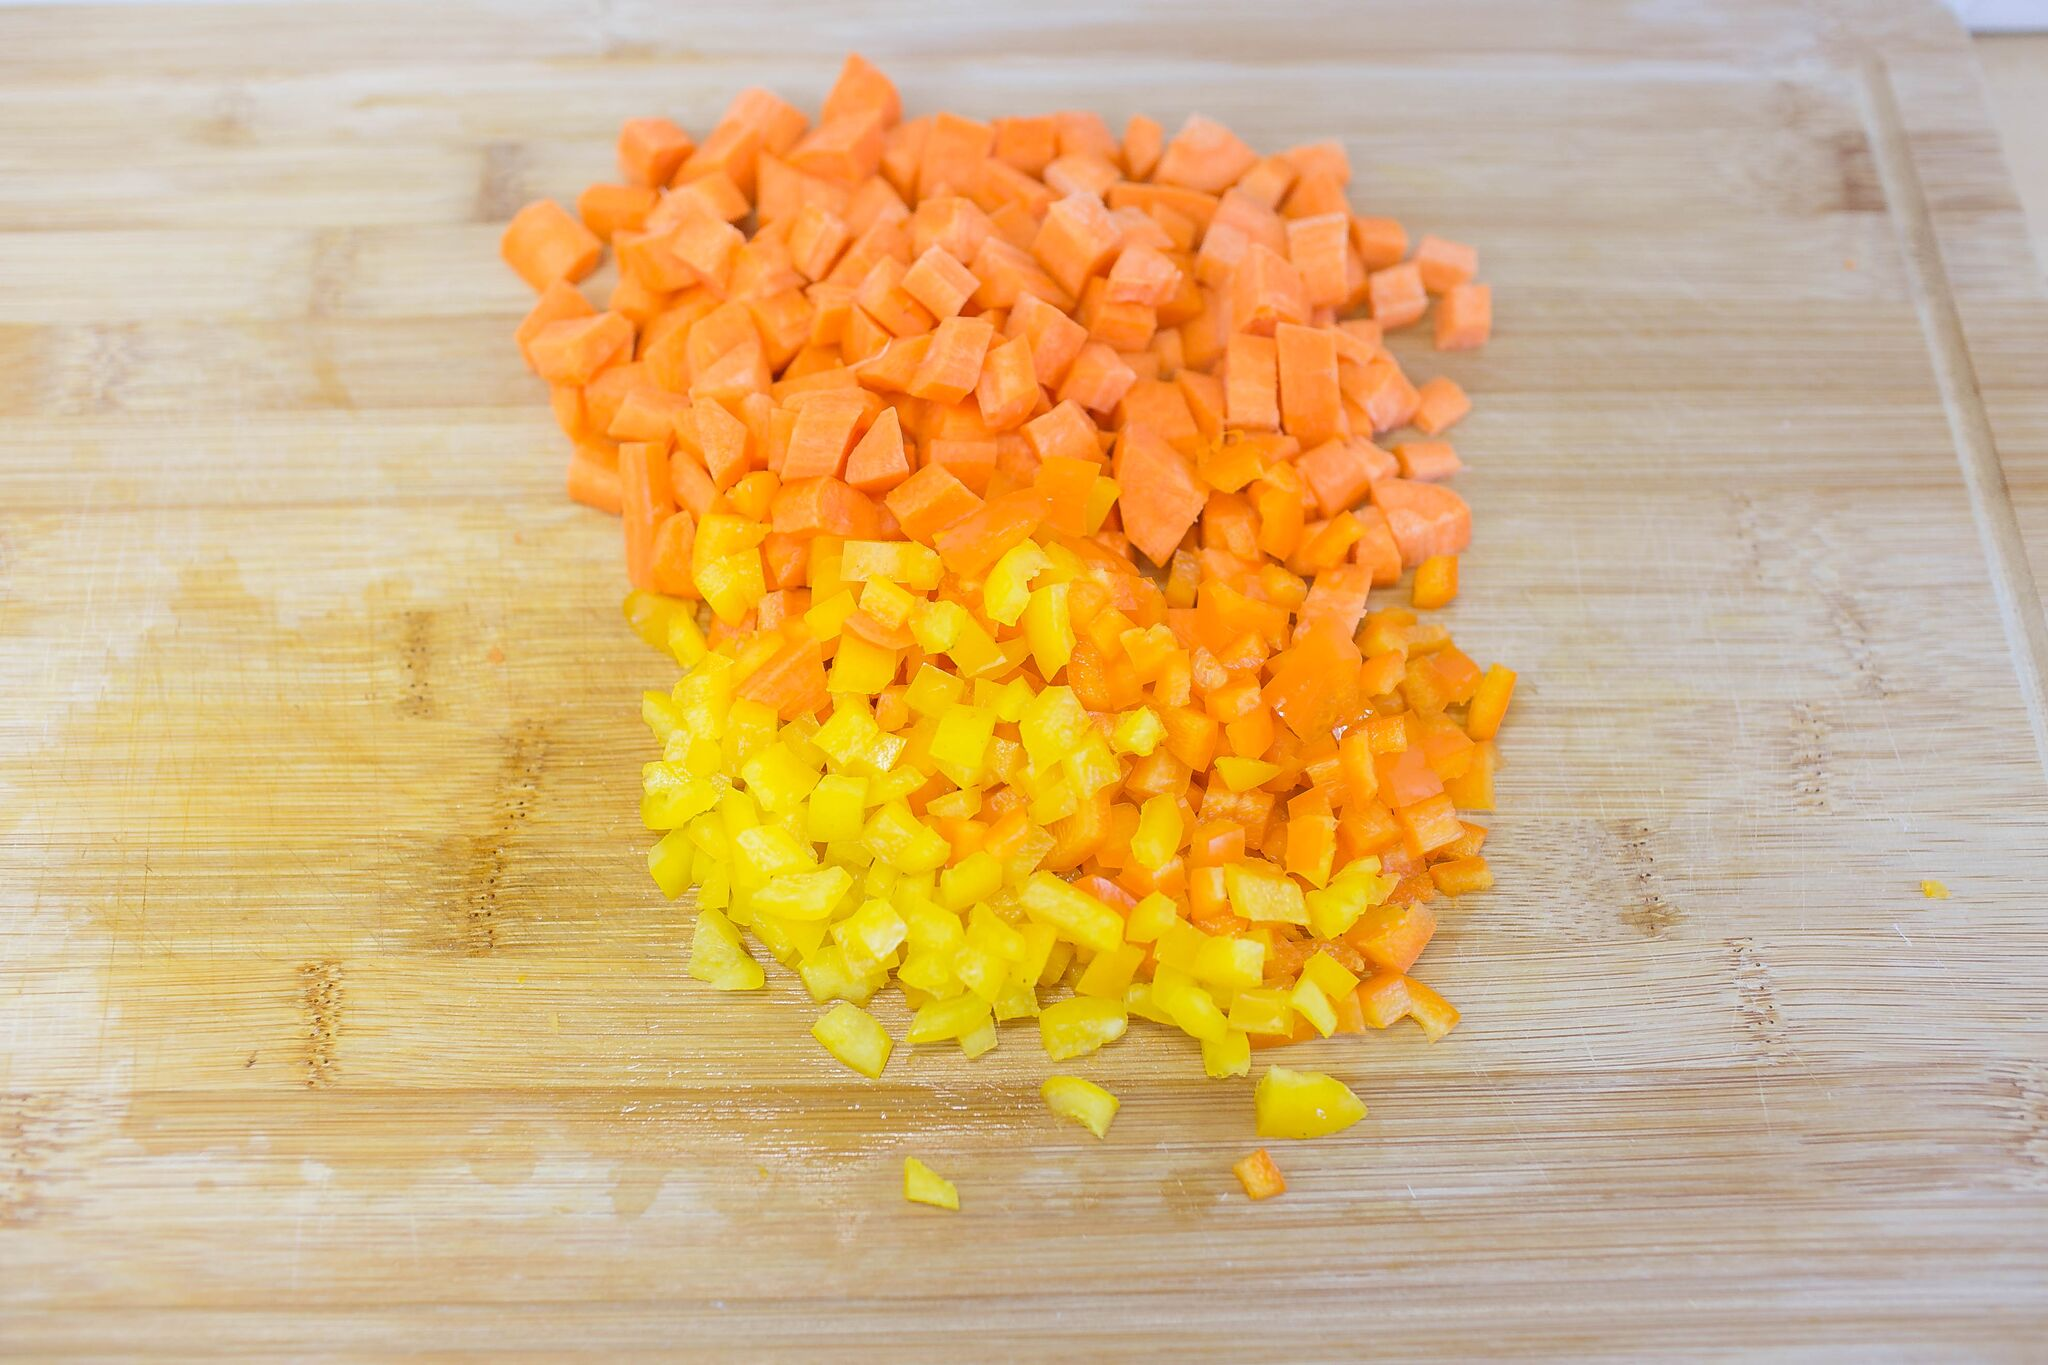 Dice carrots and peppers into bite sized pieces